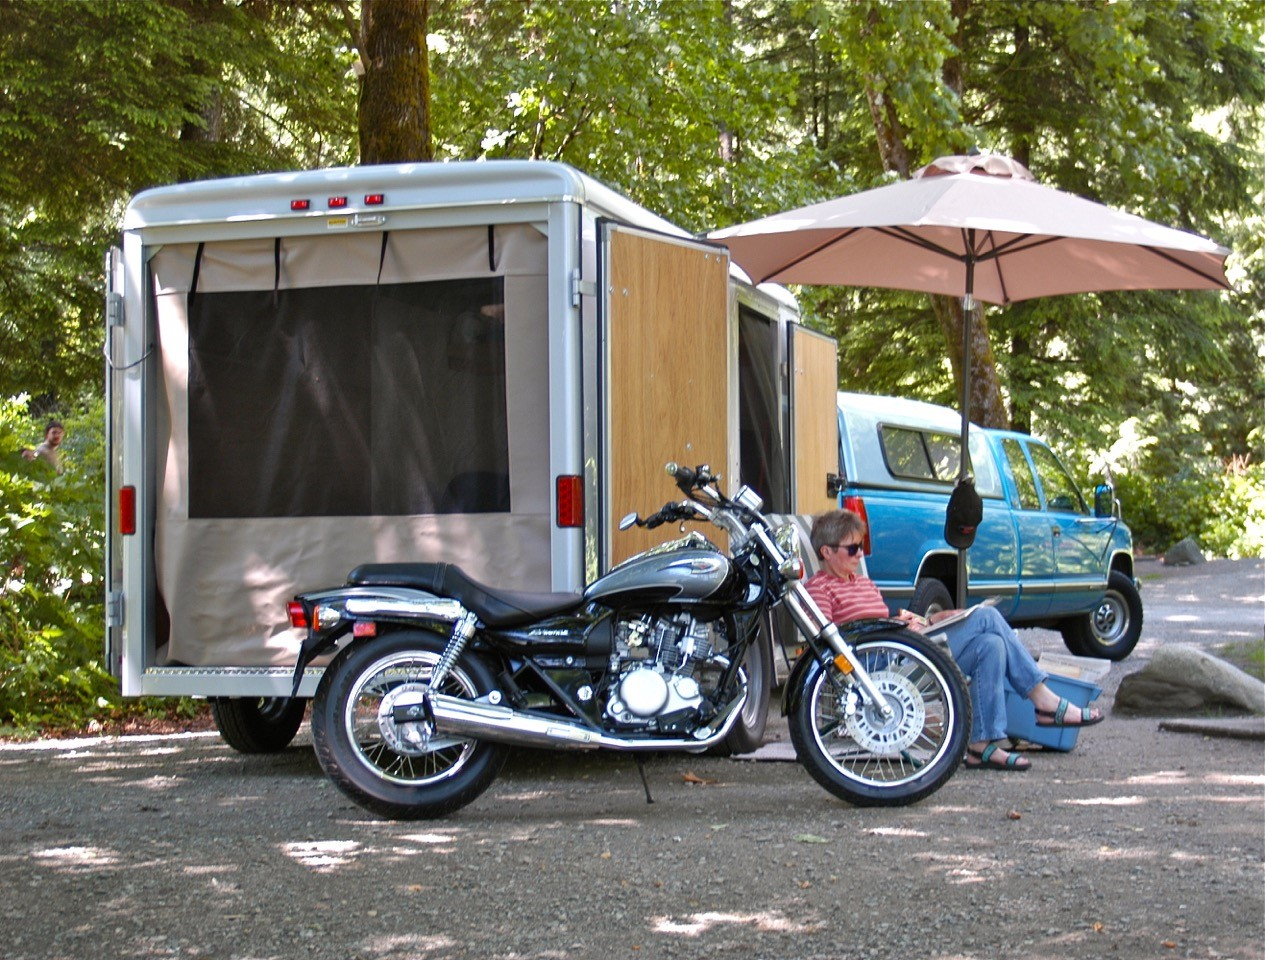 Utility Trailer RV conversion with room for the bike